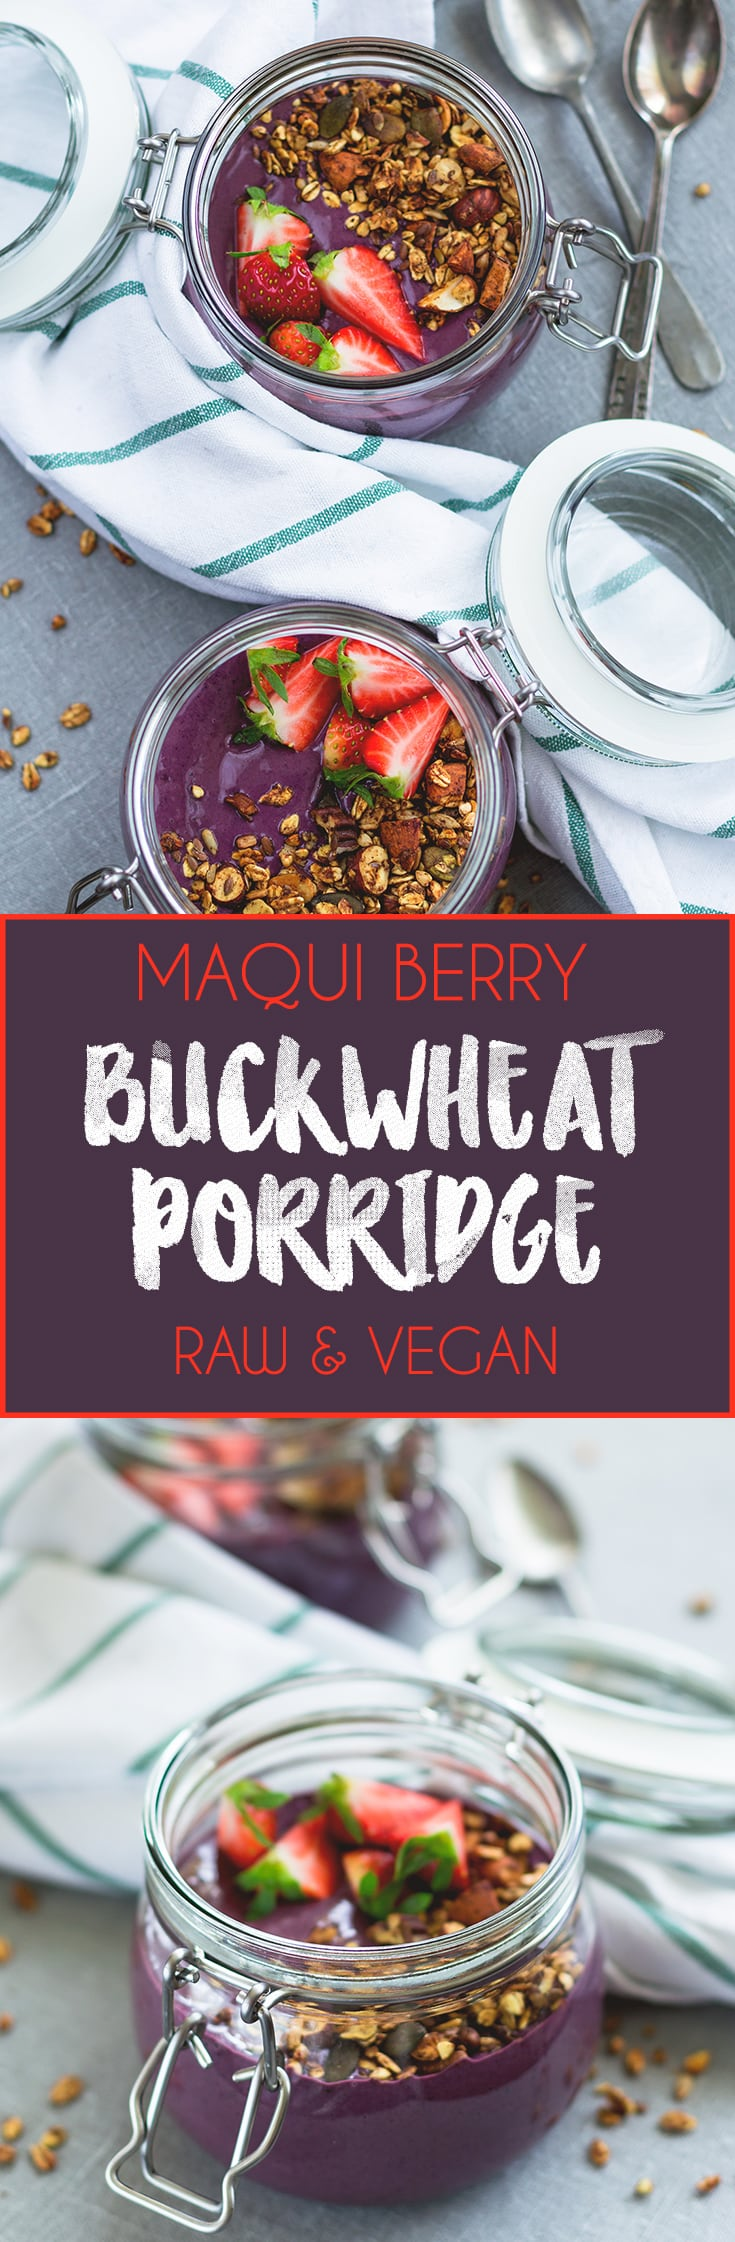 Raw Maqui Berry Buckwheat Porridge - raw soaked buckwheat, maqui berry powder, cacao, frozen berries, and a couple more delicious ingredients. I love this recipe, it's my go to breafast! So easy, healthy, and satisfying! | thehealthfulideas.com